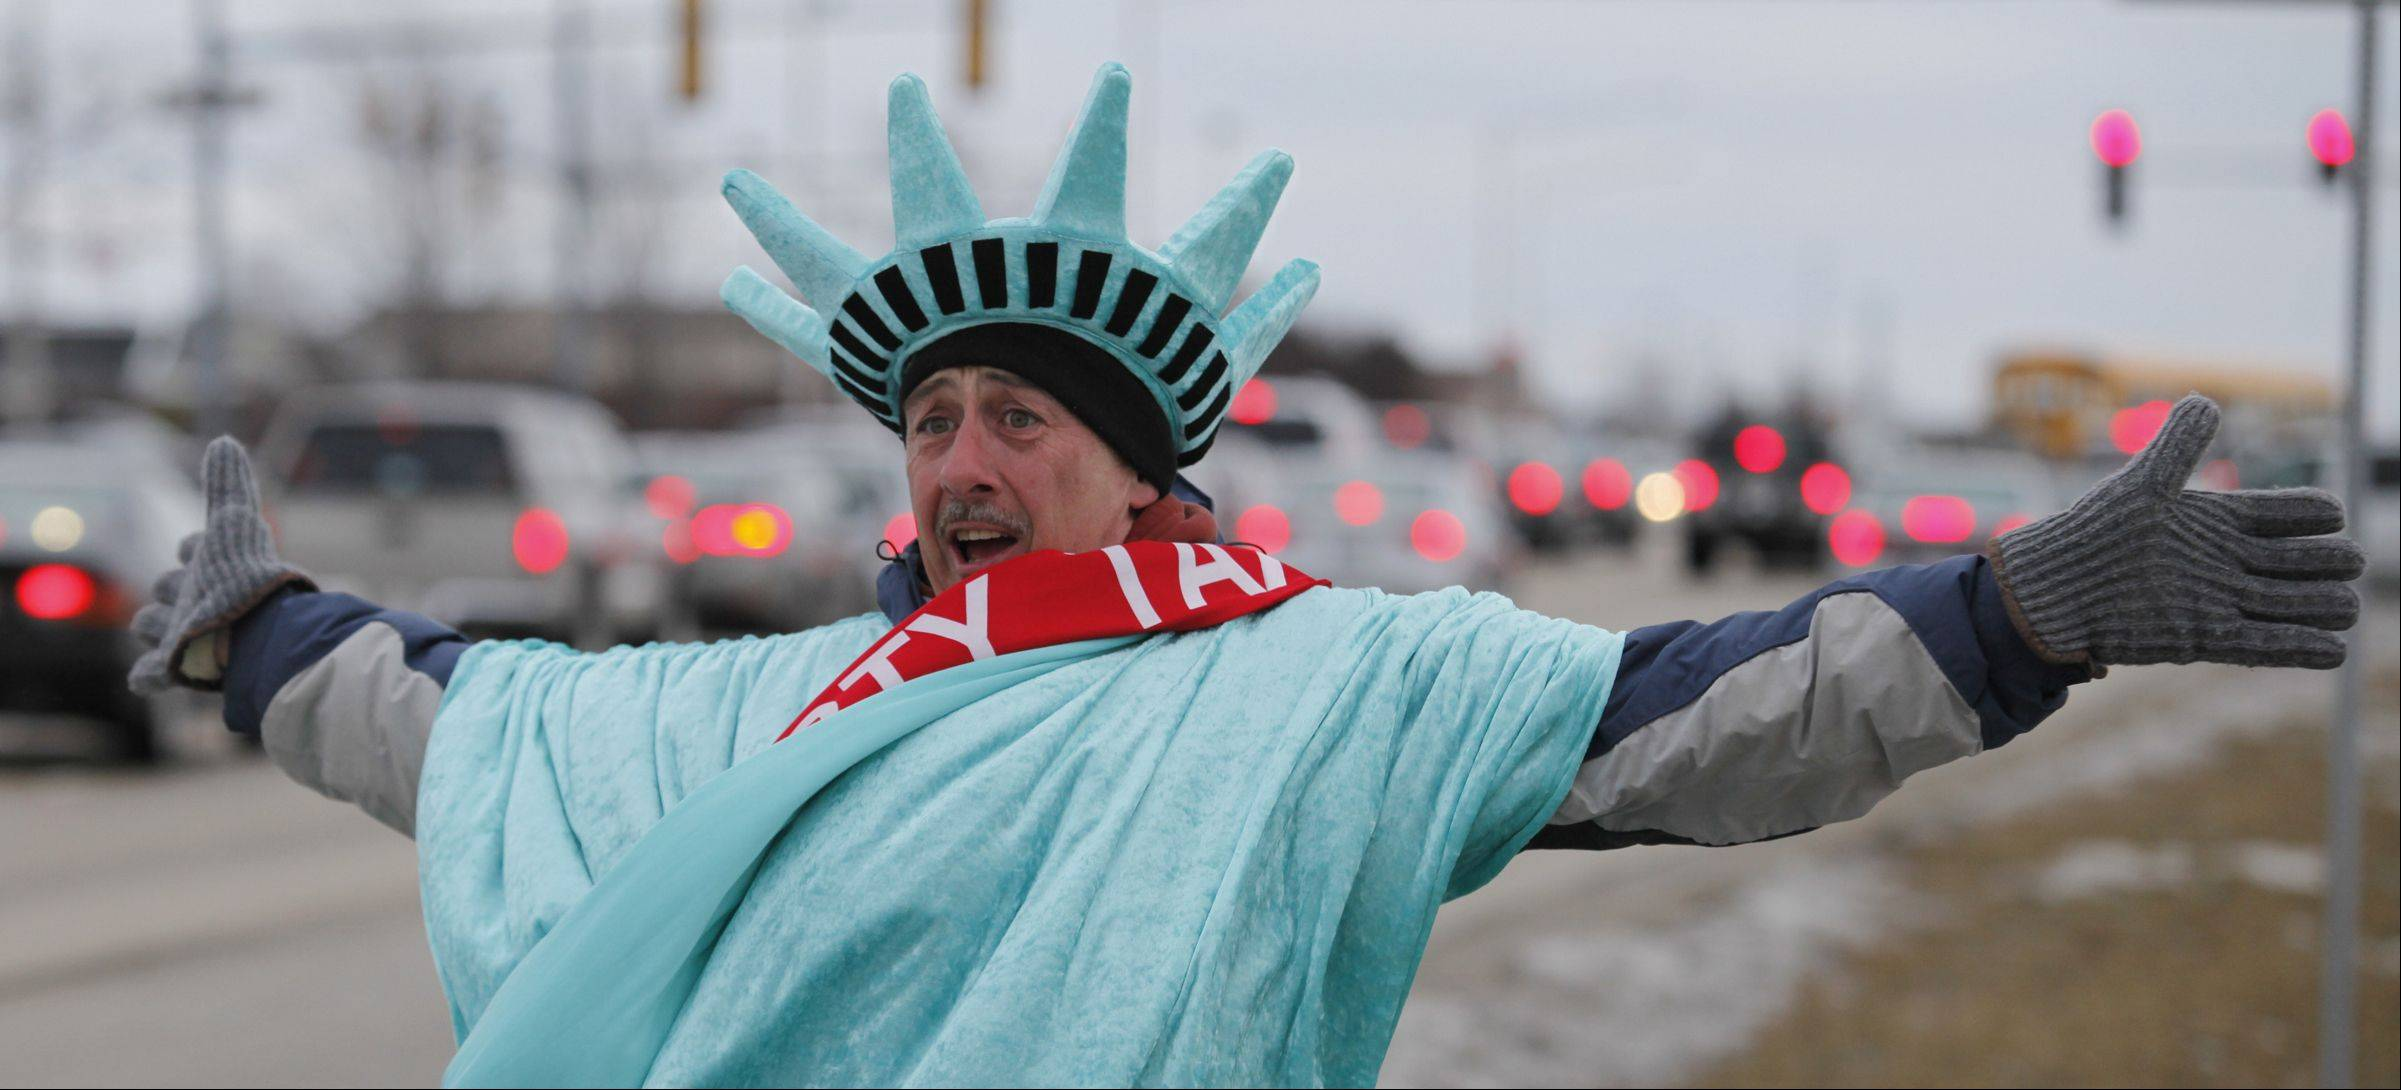 Tim Kelly works for Liberty Tax and says he enjoys acting like a goof while wearing the Statue of Liberty costume.